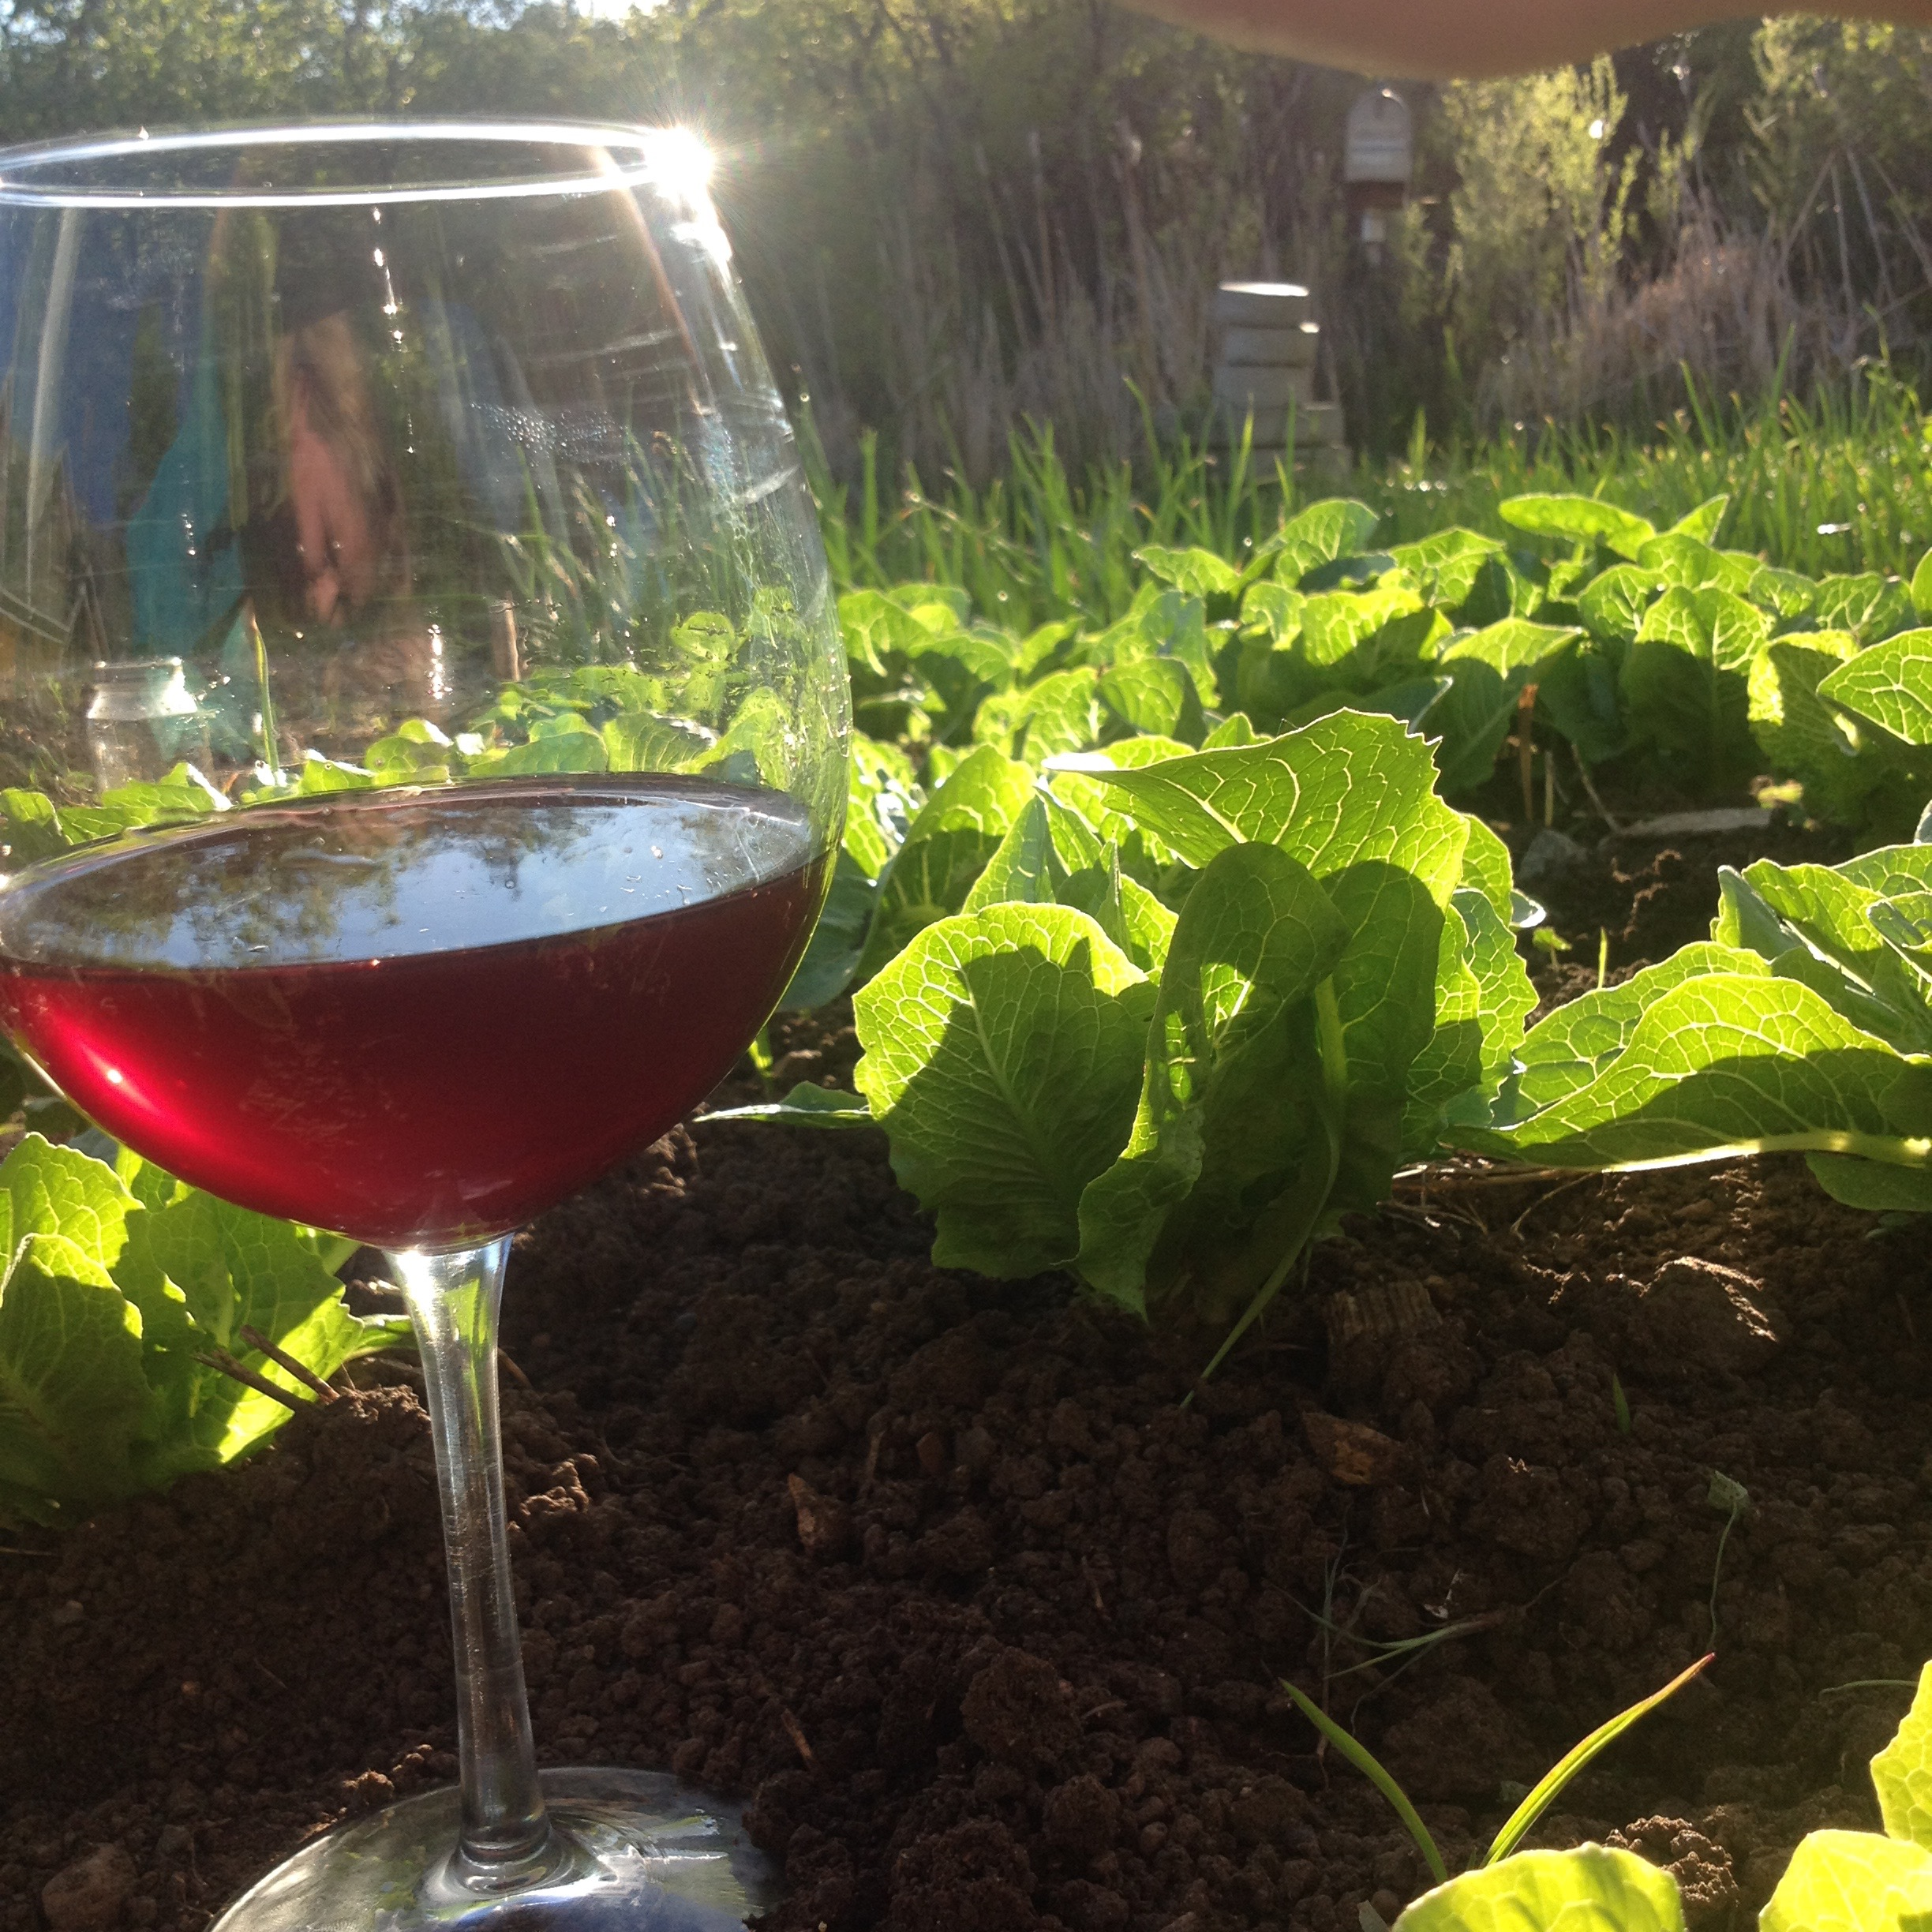 Red Wine glass with in the garden with lettuce Paonia, Colorado